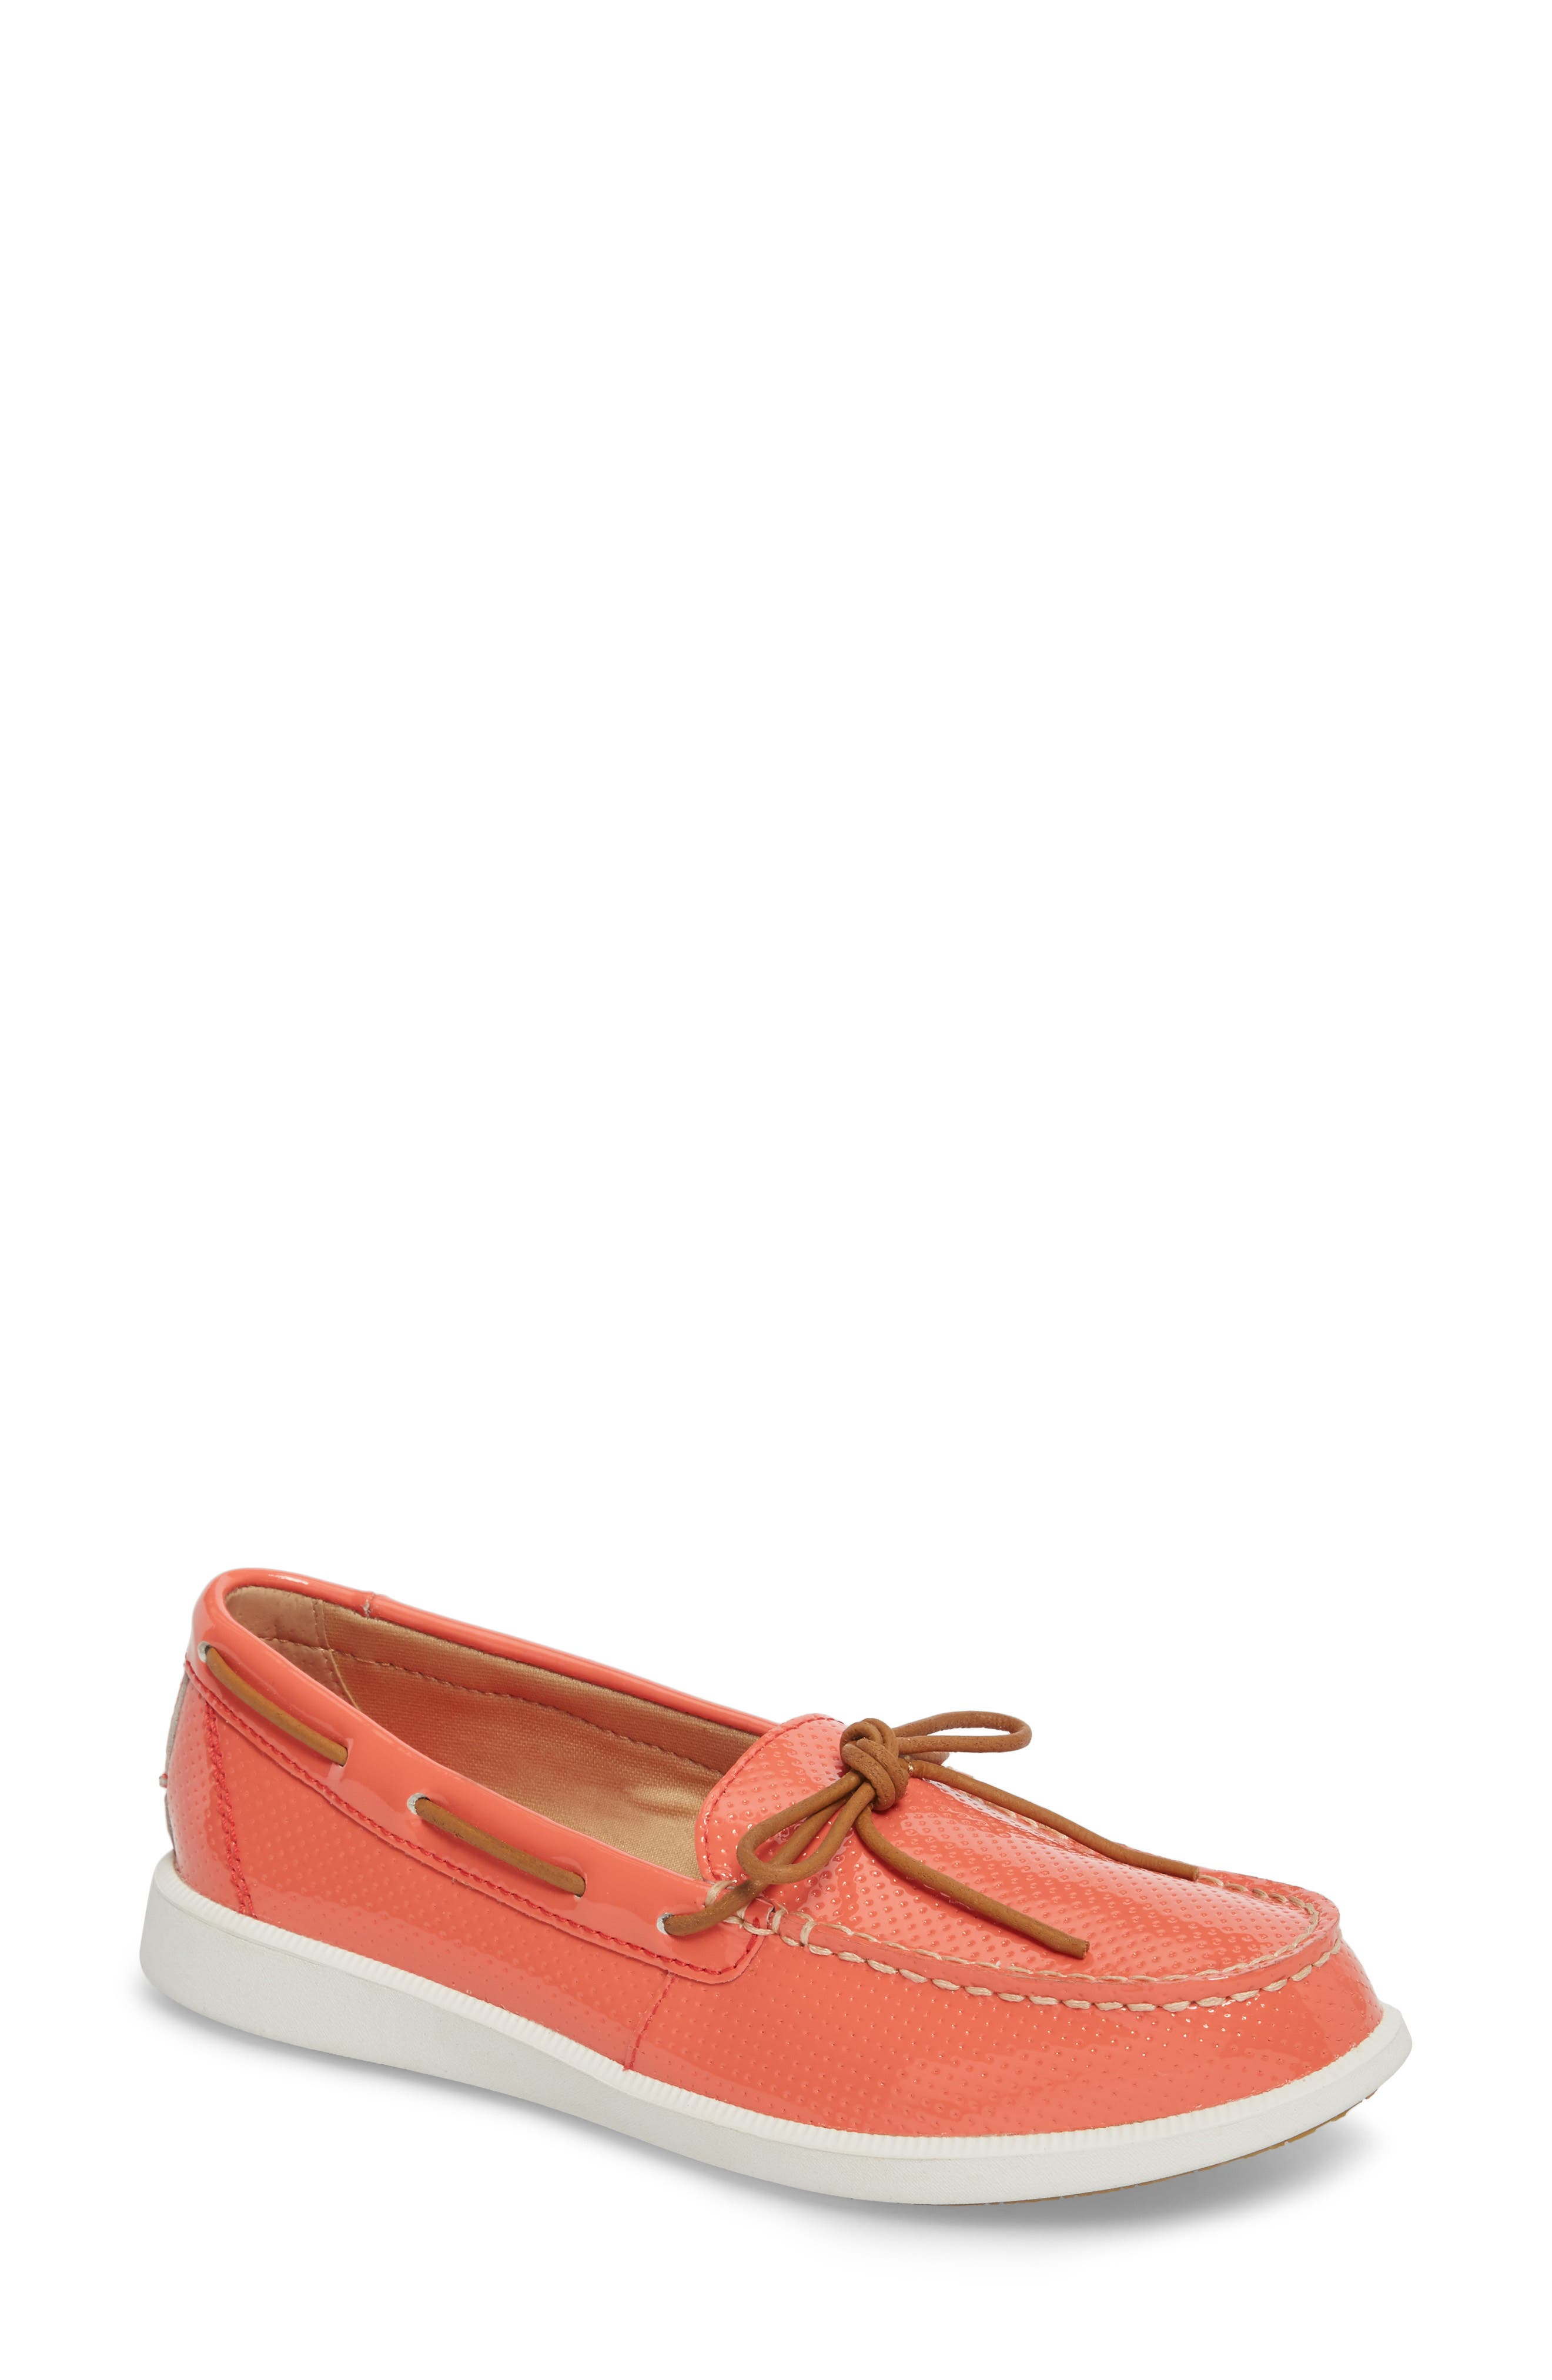 Oasis Boat Shoe,                         Main,                         color, Coral Patent Leather